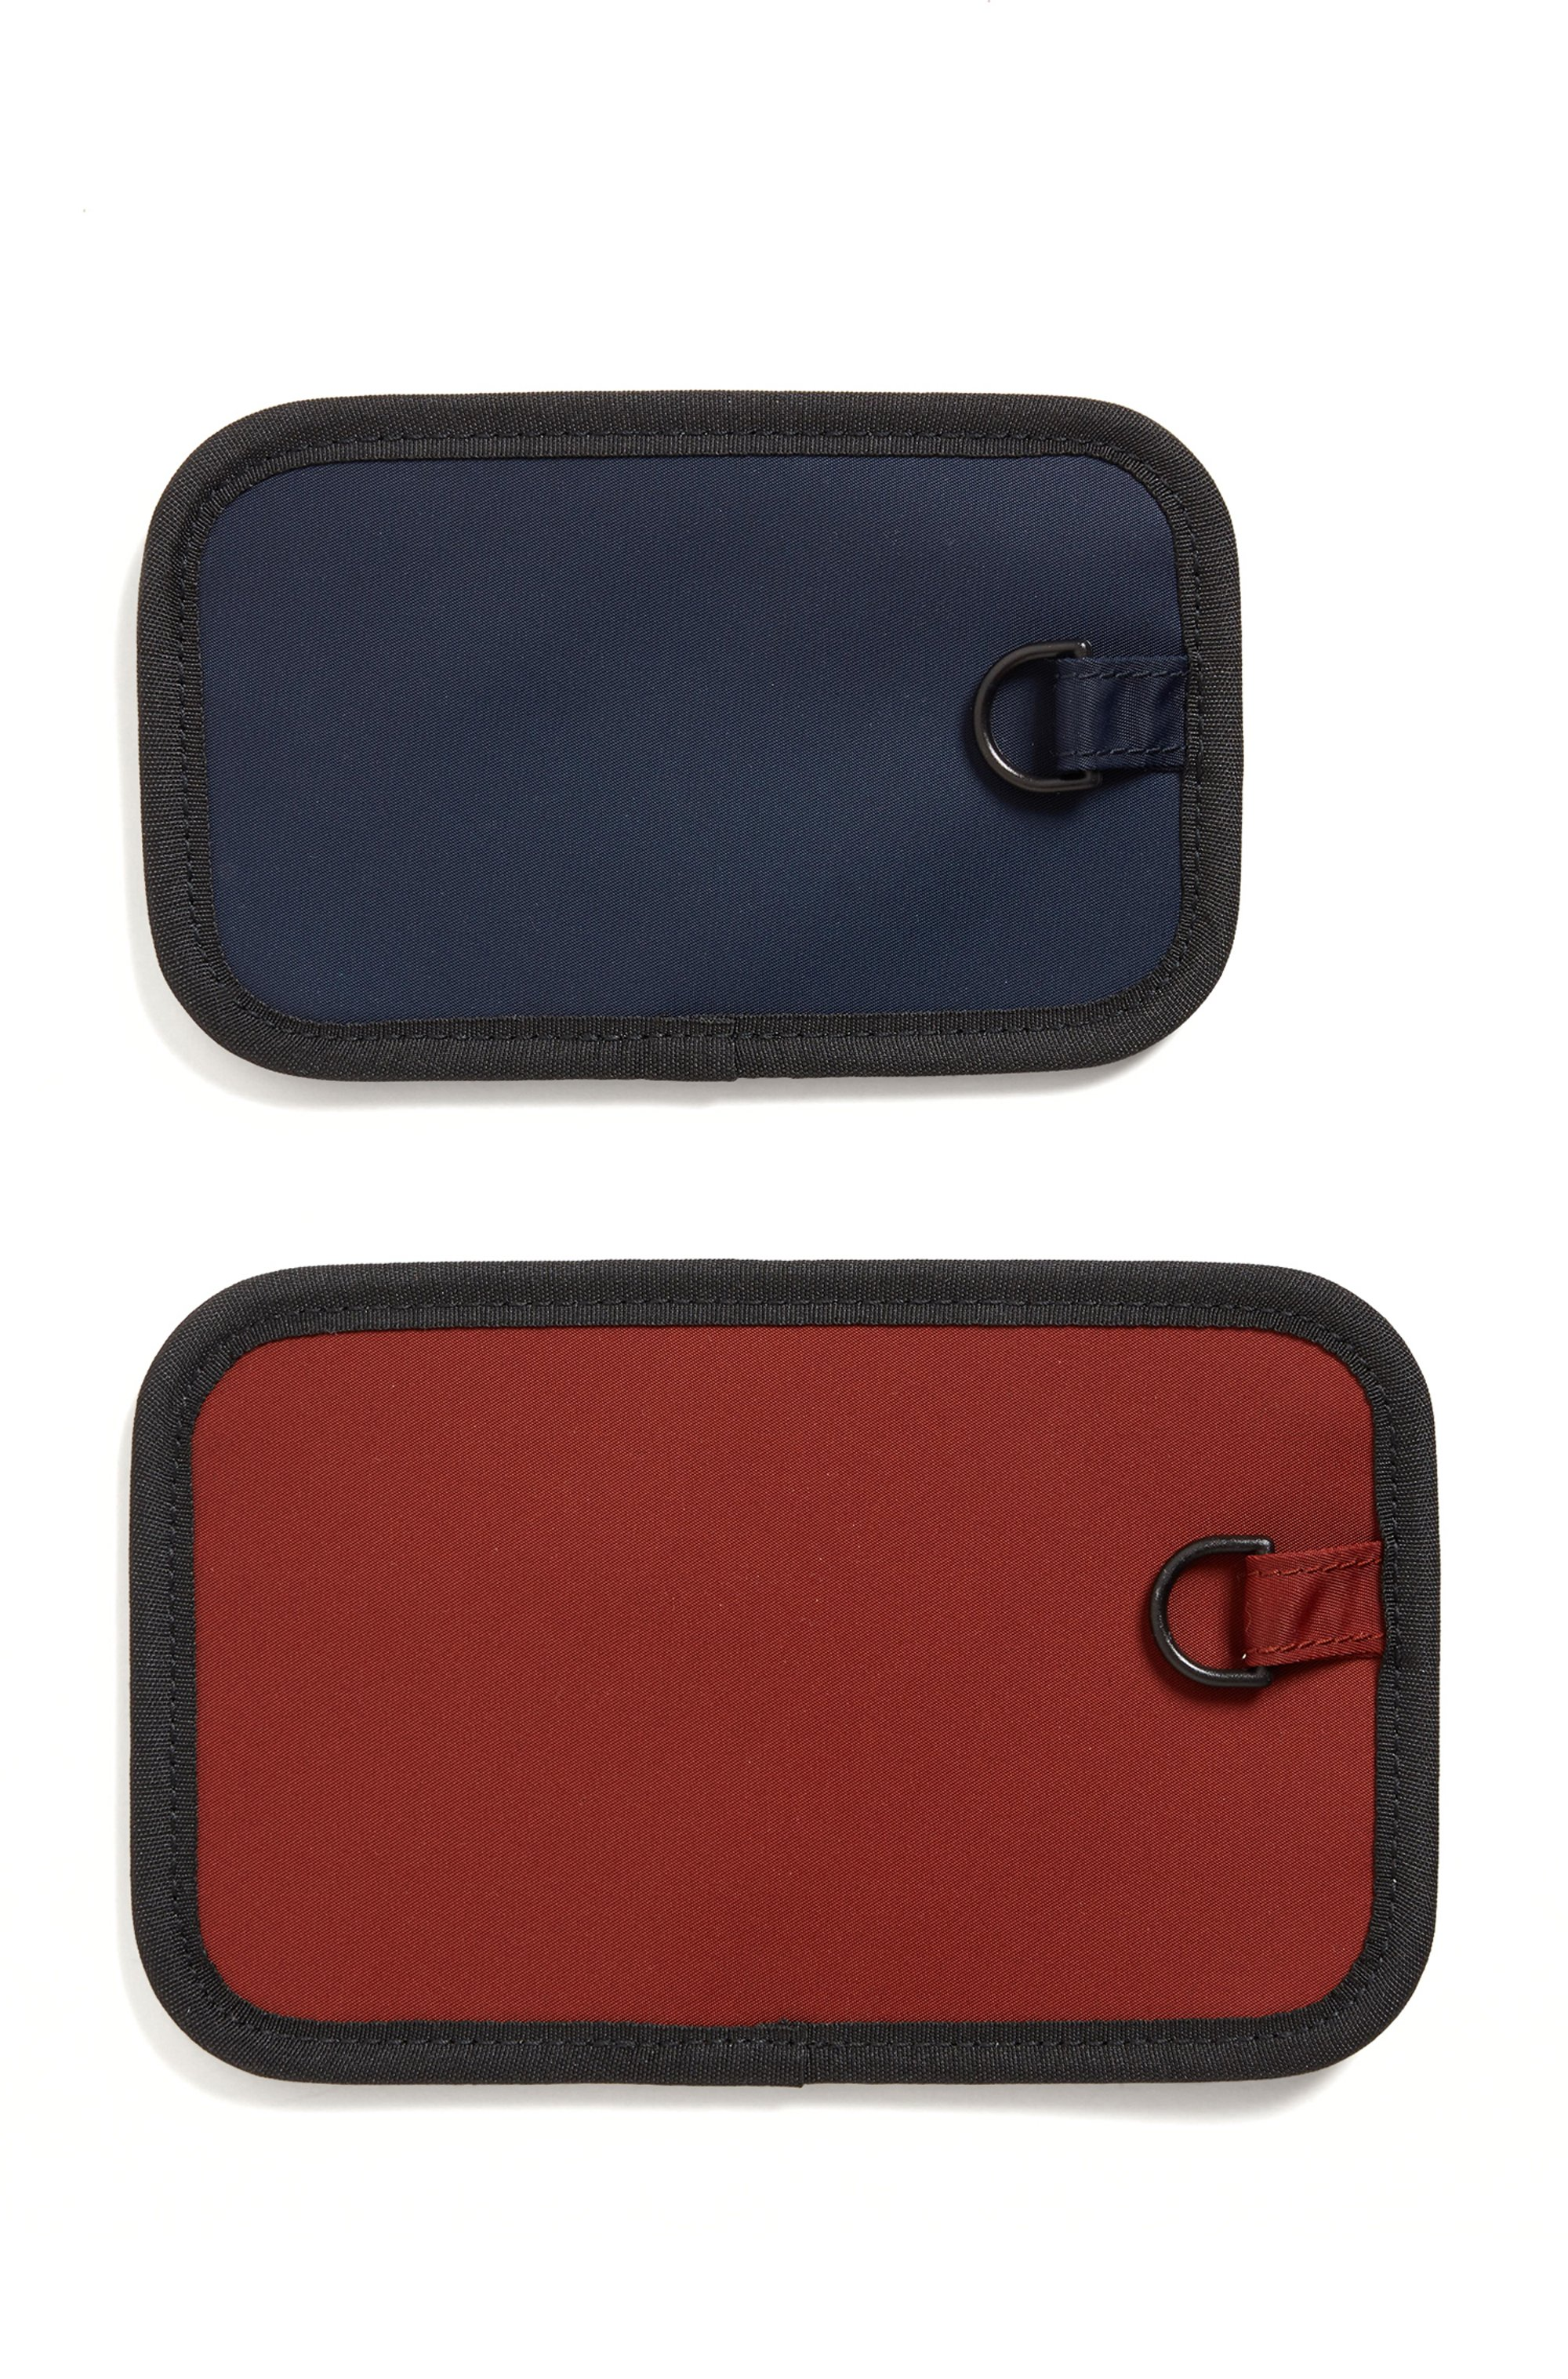 Neck pouch in structured nylon with exclusive logos